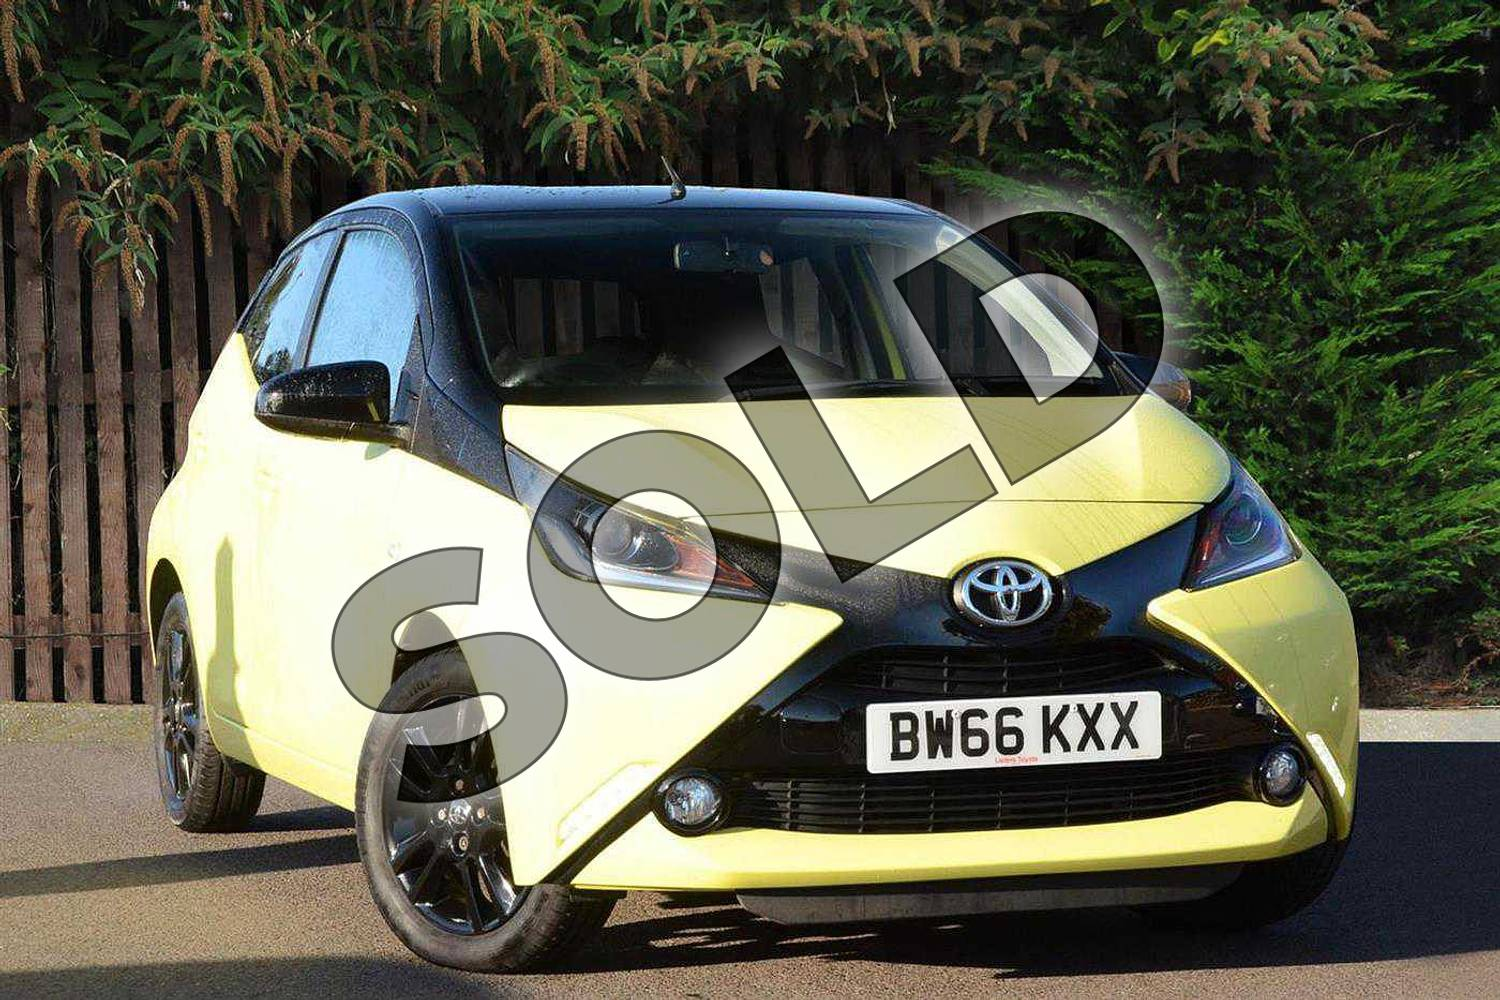 2016 Toyota AYGO Hatchback Special Editions Special Editions 1.0 VVT-i X-Cite 3 5dr in Yellow at Listers Toyota Coventry